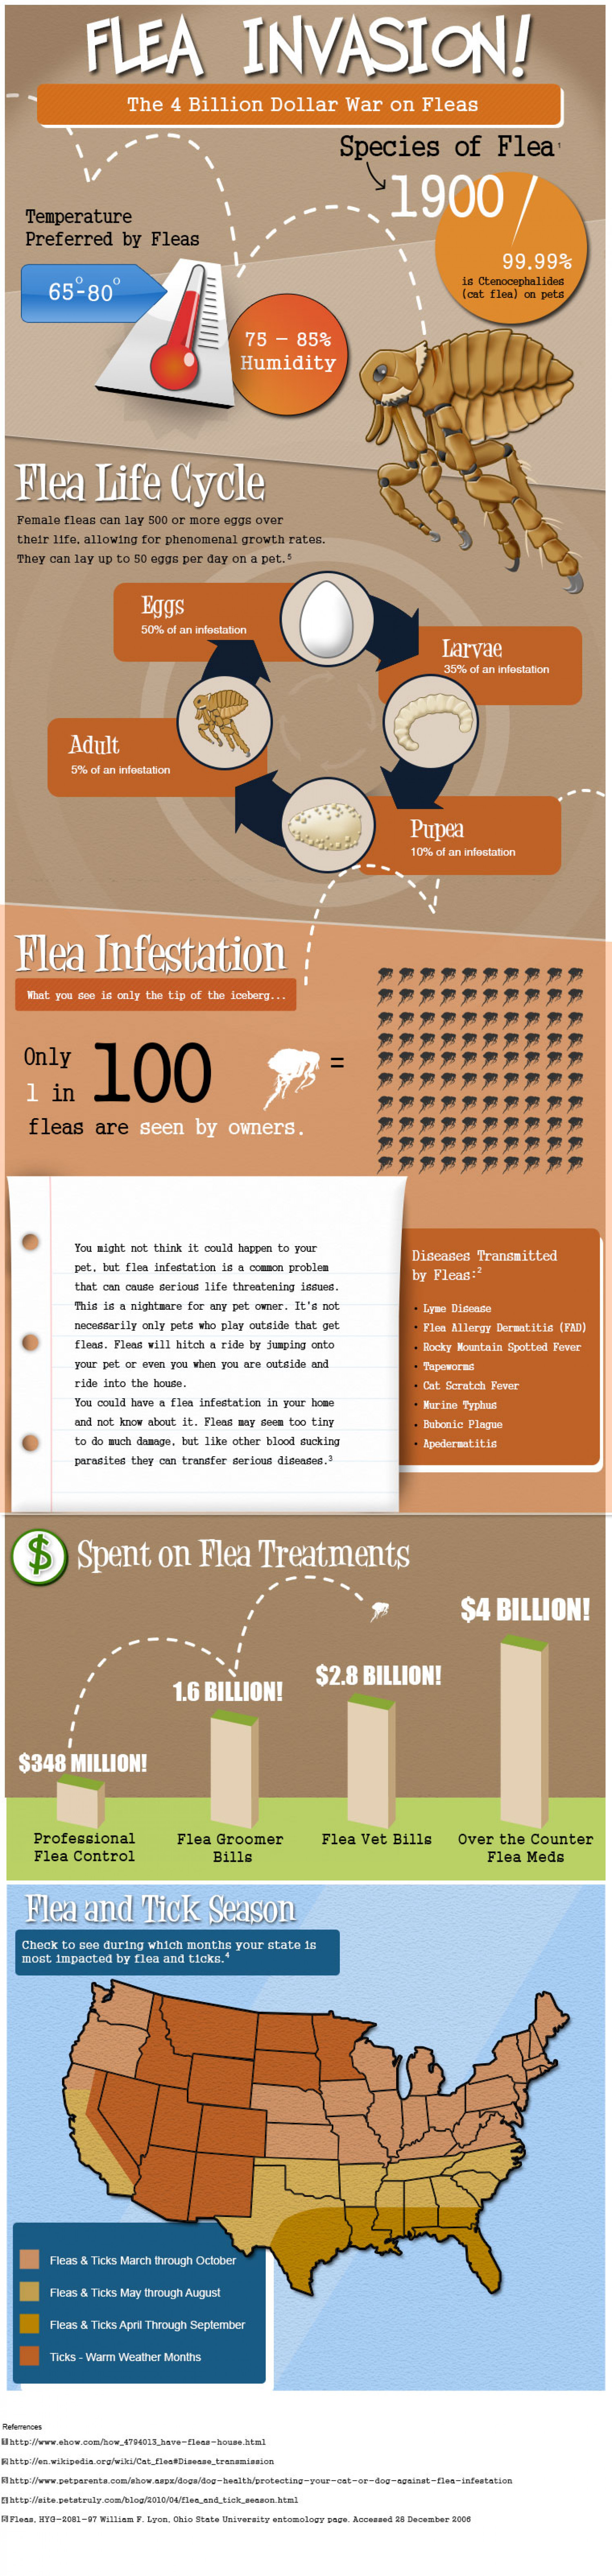 The 4 Billion Dollar War on Fleas Infographic